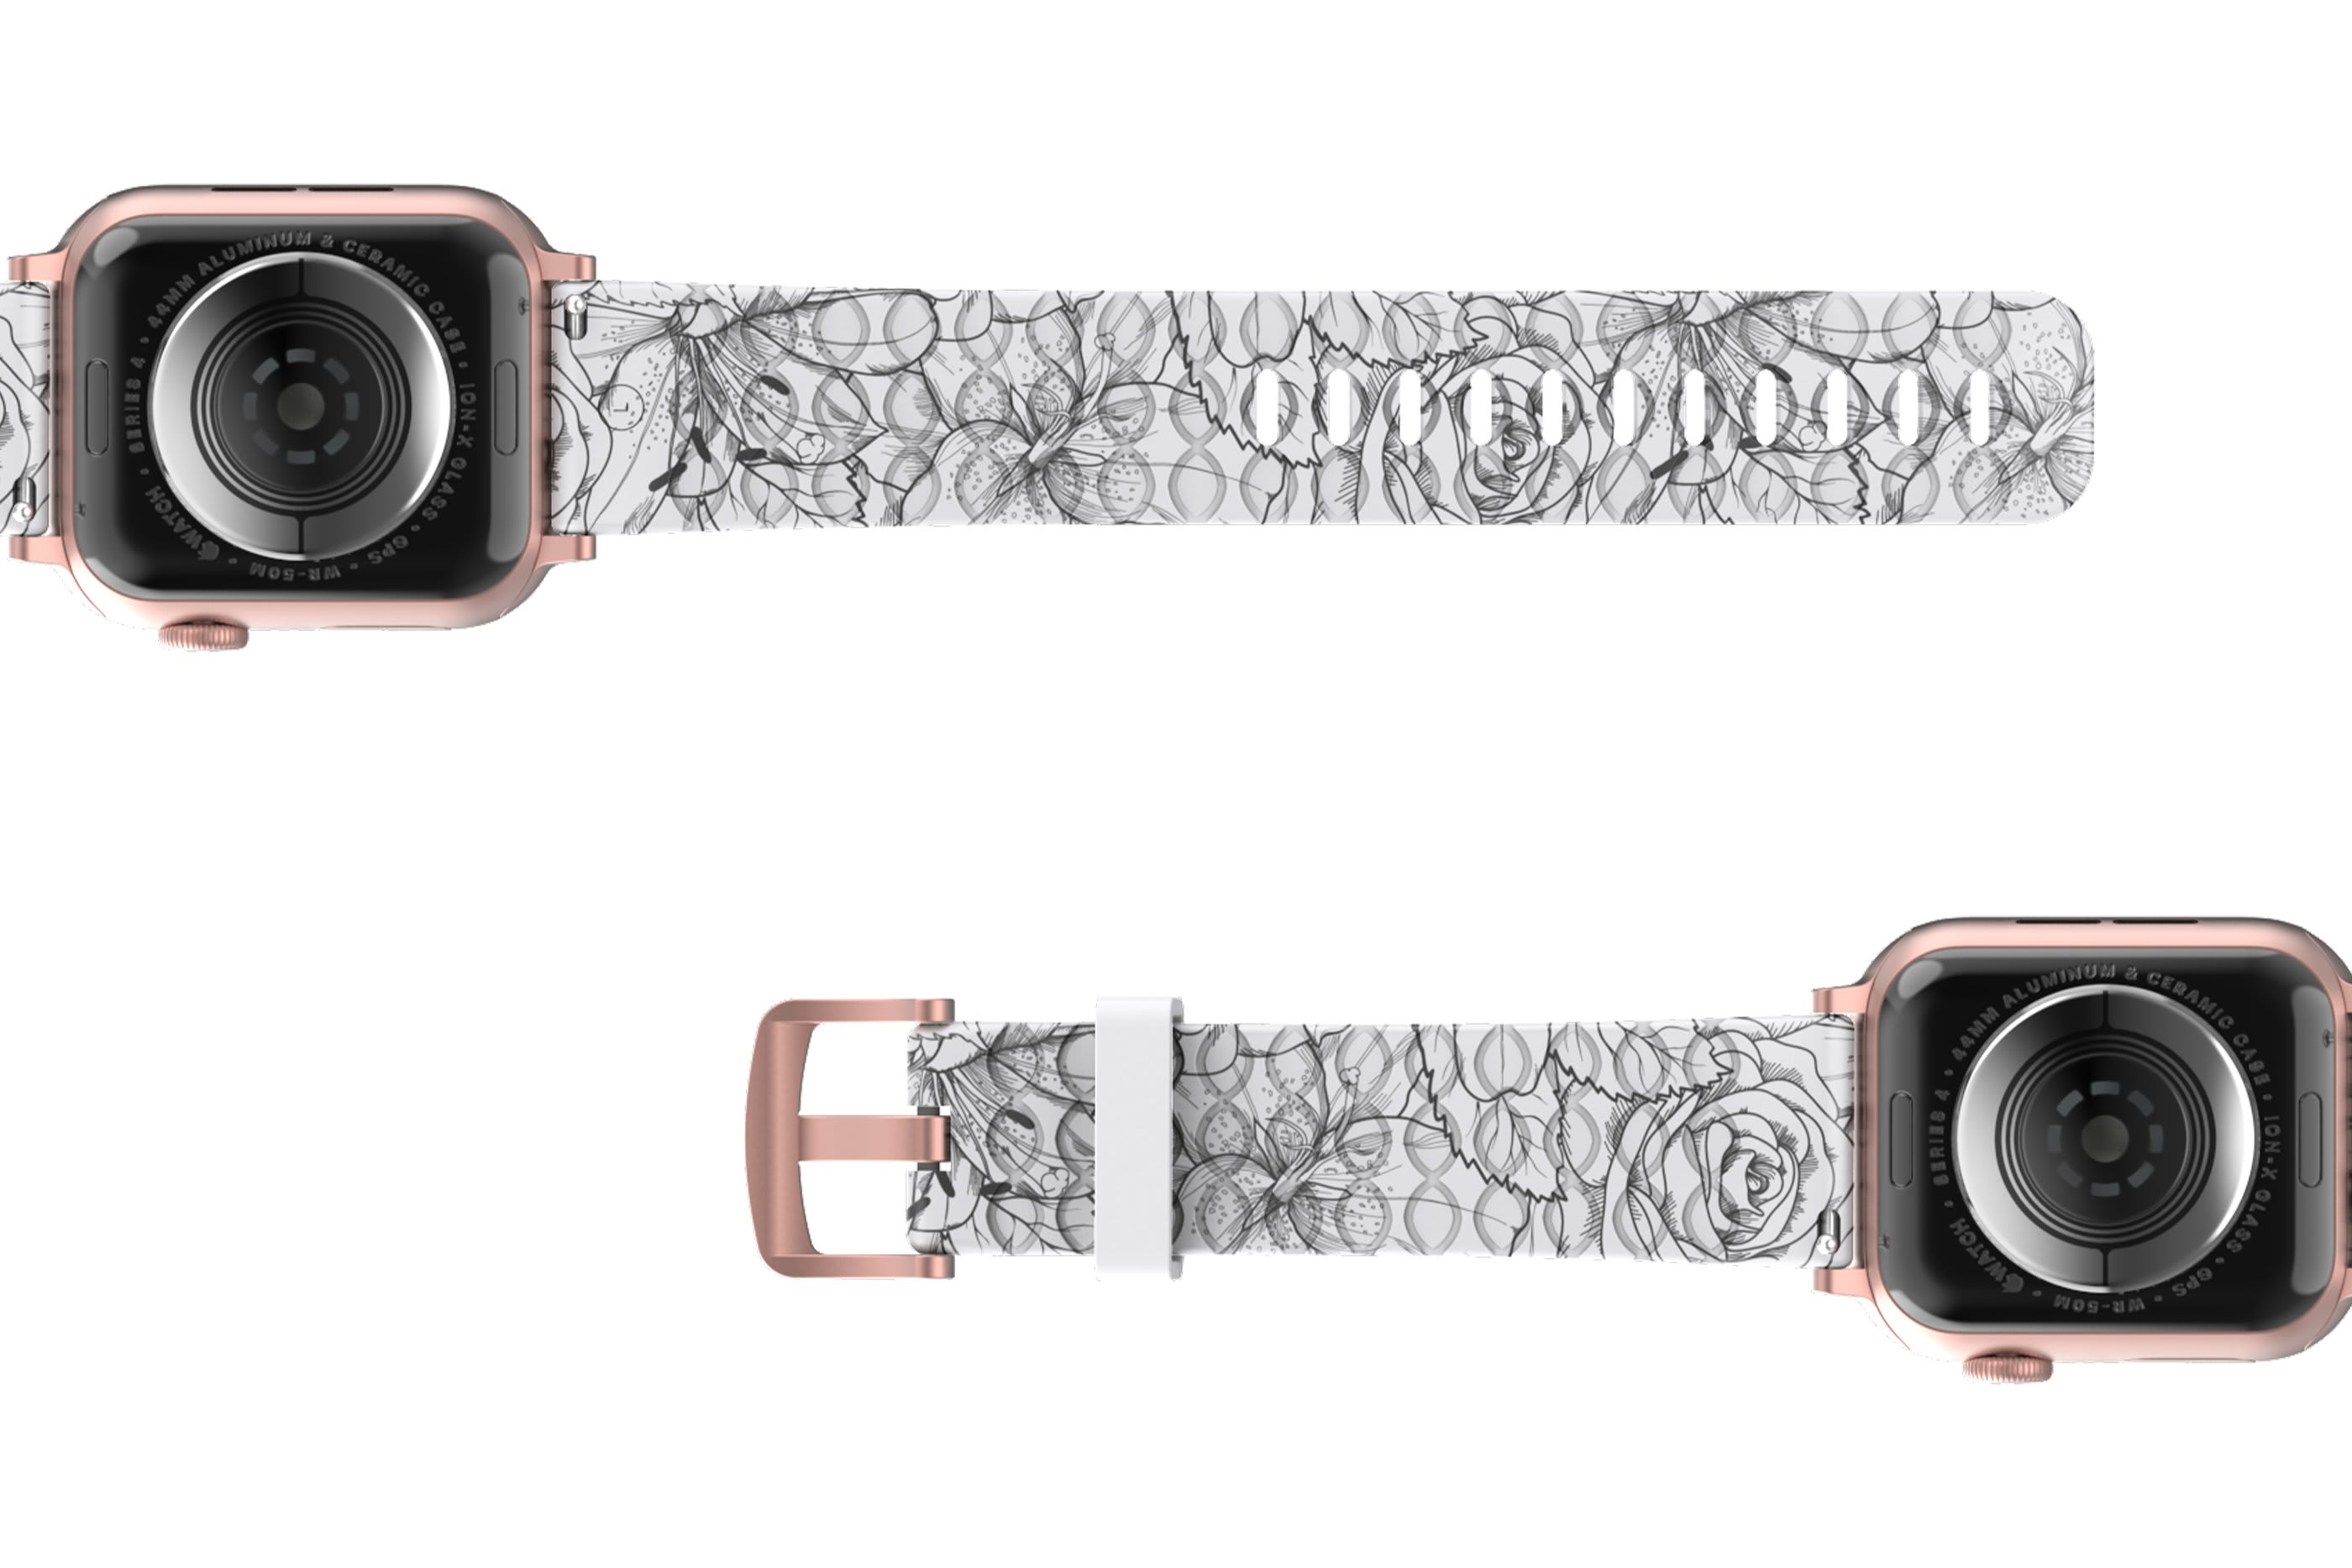 Winter Rose Apple Watch Band with rose gold hardware viewed bottom up